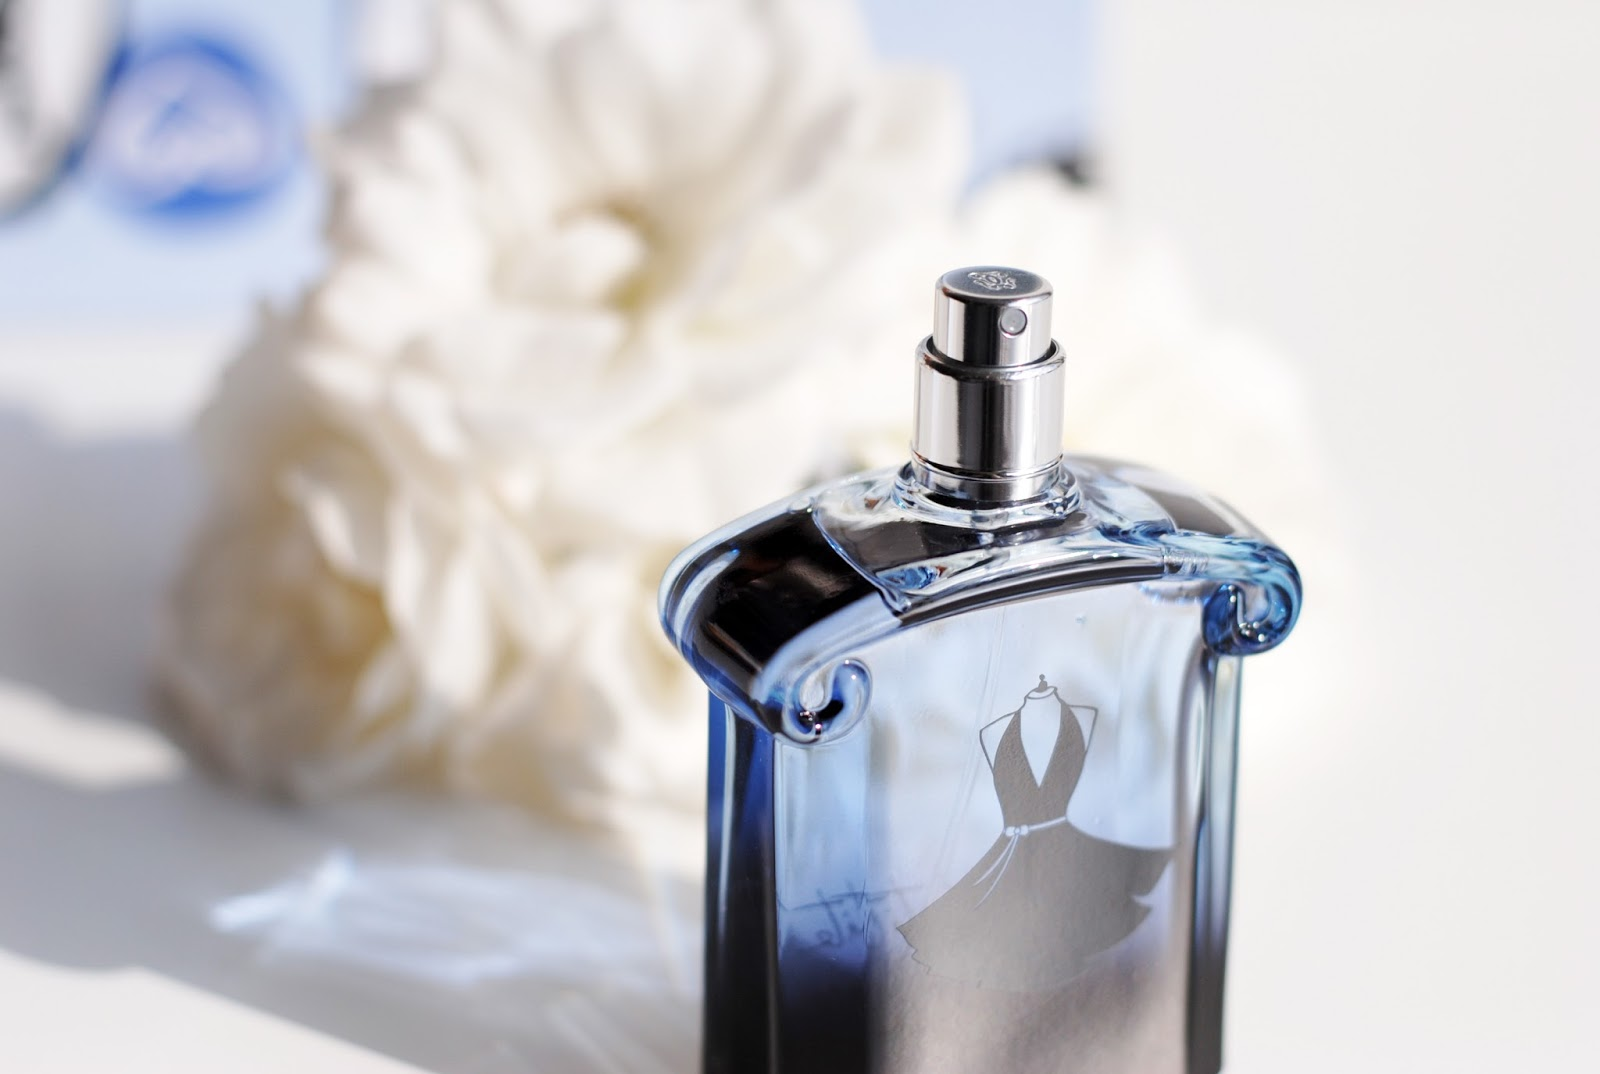 a2aef5b9b71 This new fragrance is the fourth in the La Petite Robe Noire line - it s  been only a year since Guerlain released the Eau ...